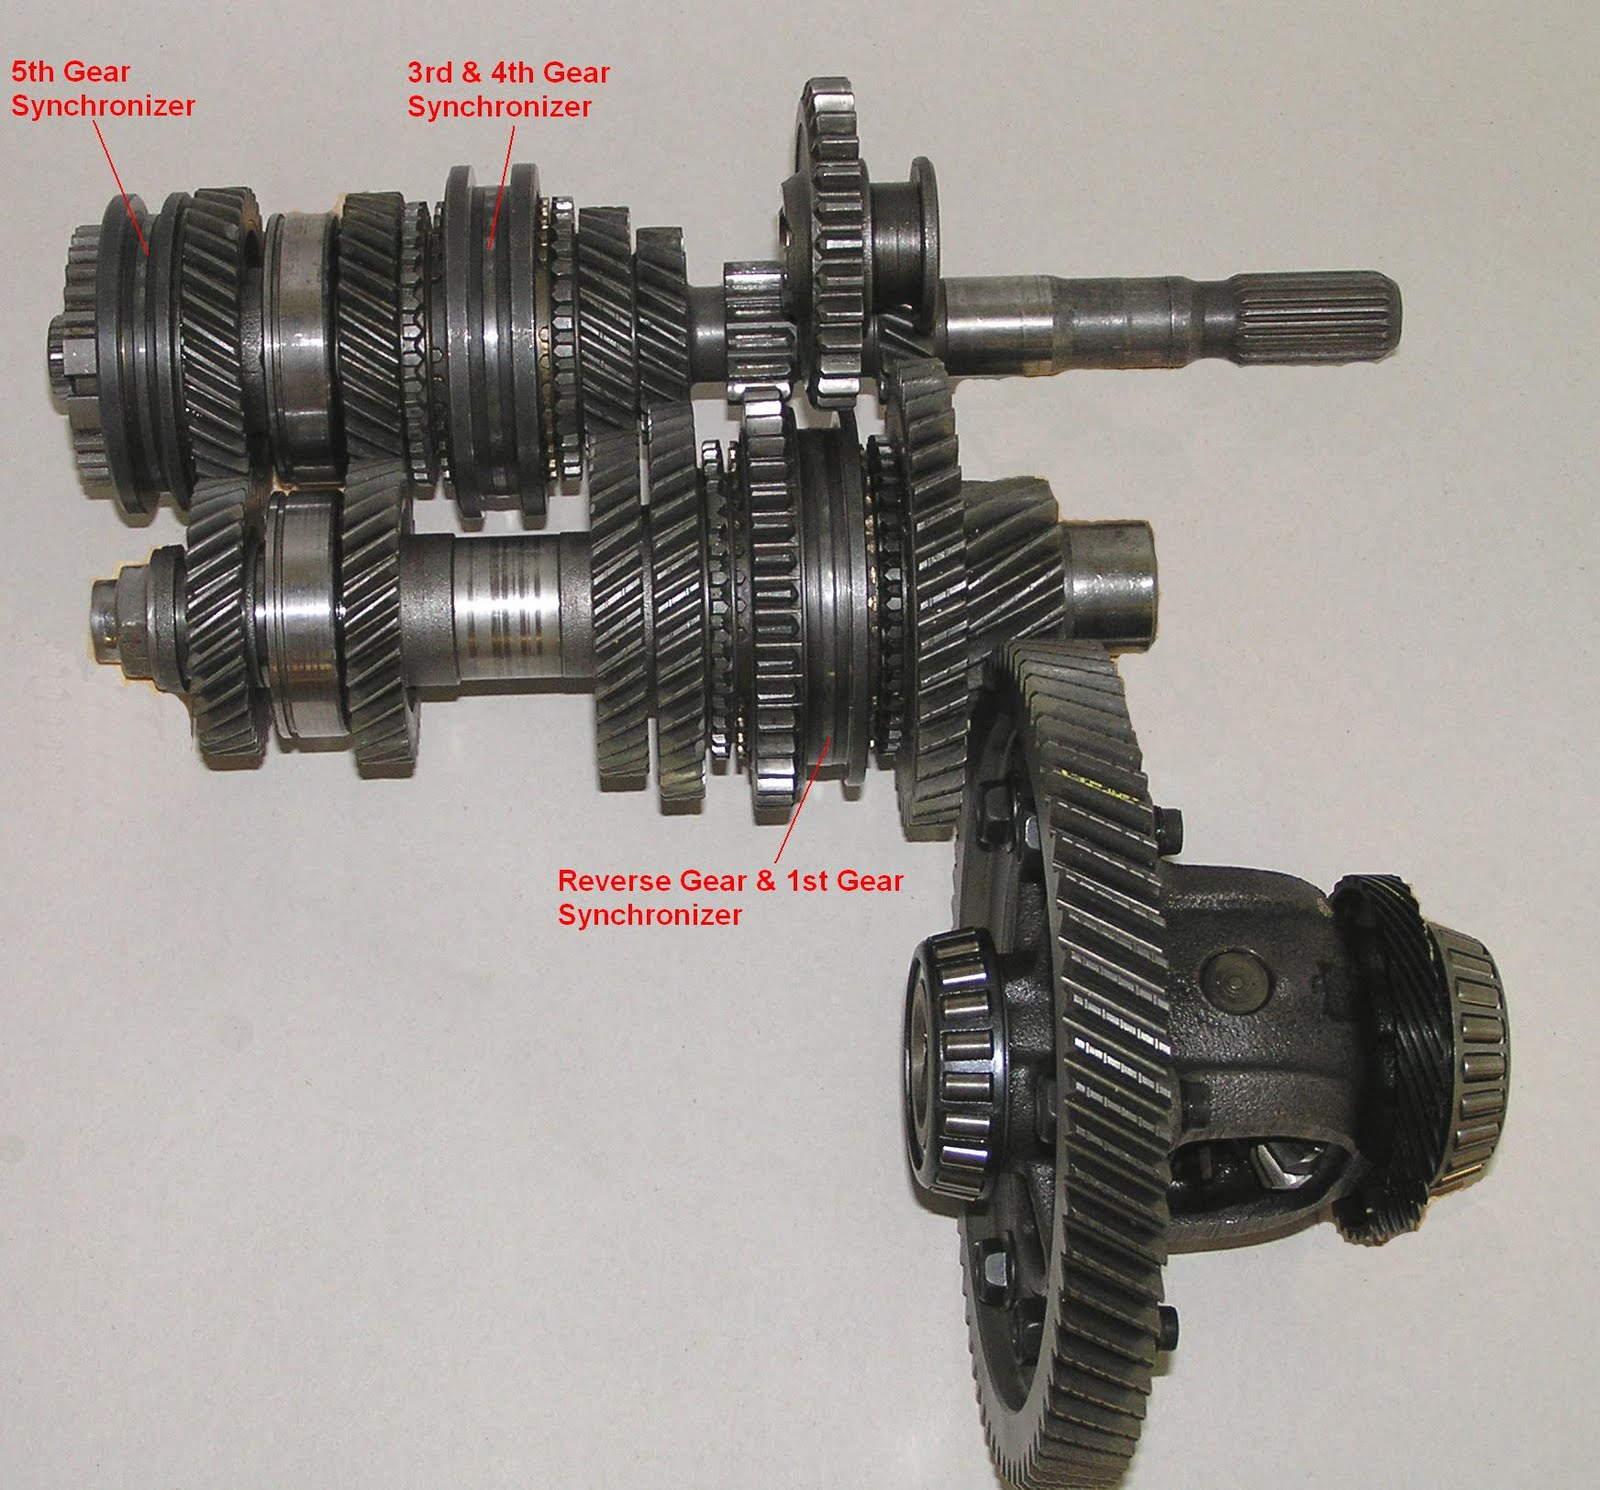 Toyota C Transmission Related Keywords & Suggestions